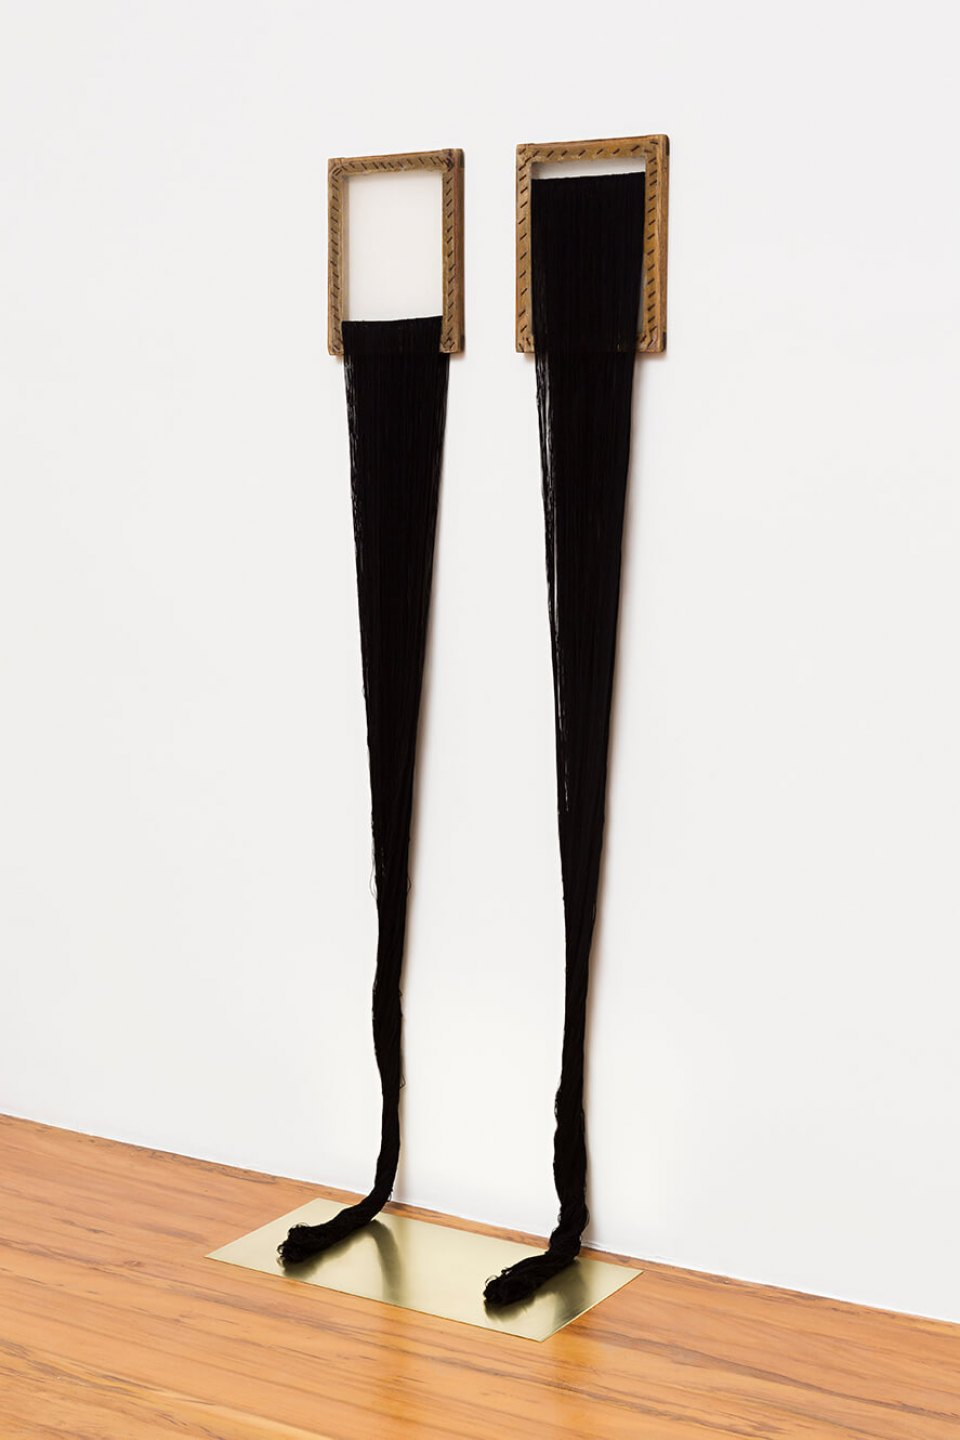 Paloma Bosquê,<em> Mirror. The two girls</em>, 2014, lurex threads, canvas and brass plate, 164 × 60 × 35,5 cm - Mendes Wood DM